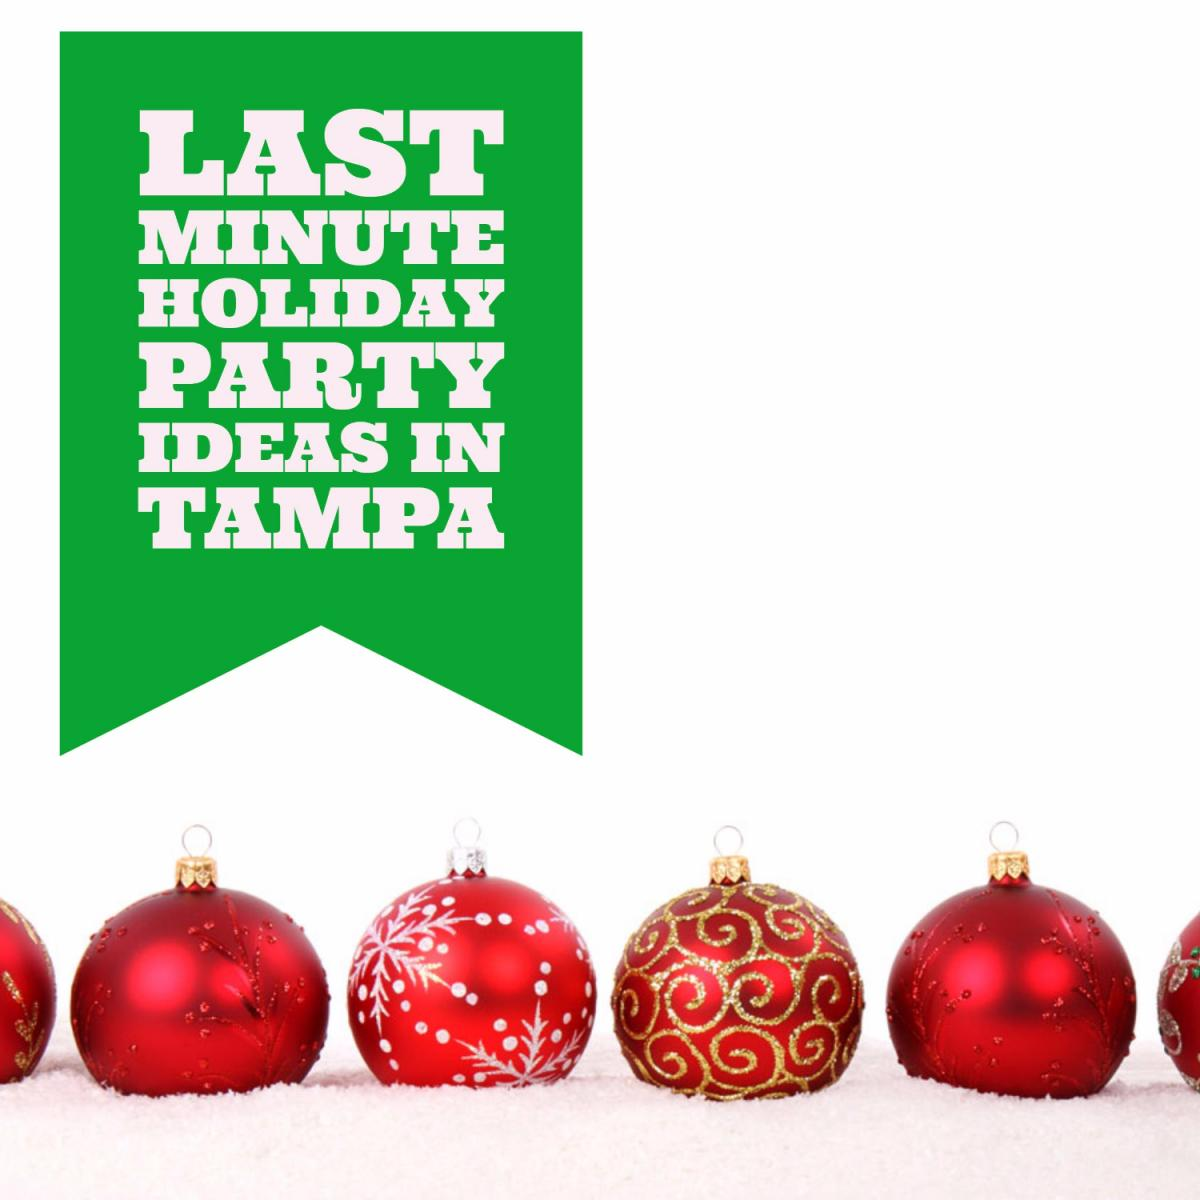 Last minute holiday party ideas in tampa for Last minute party ideas